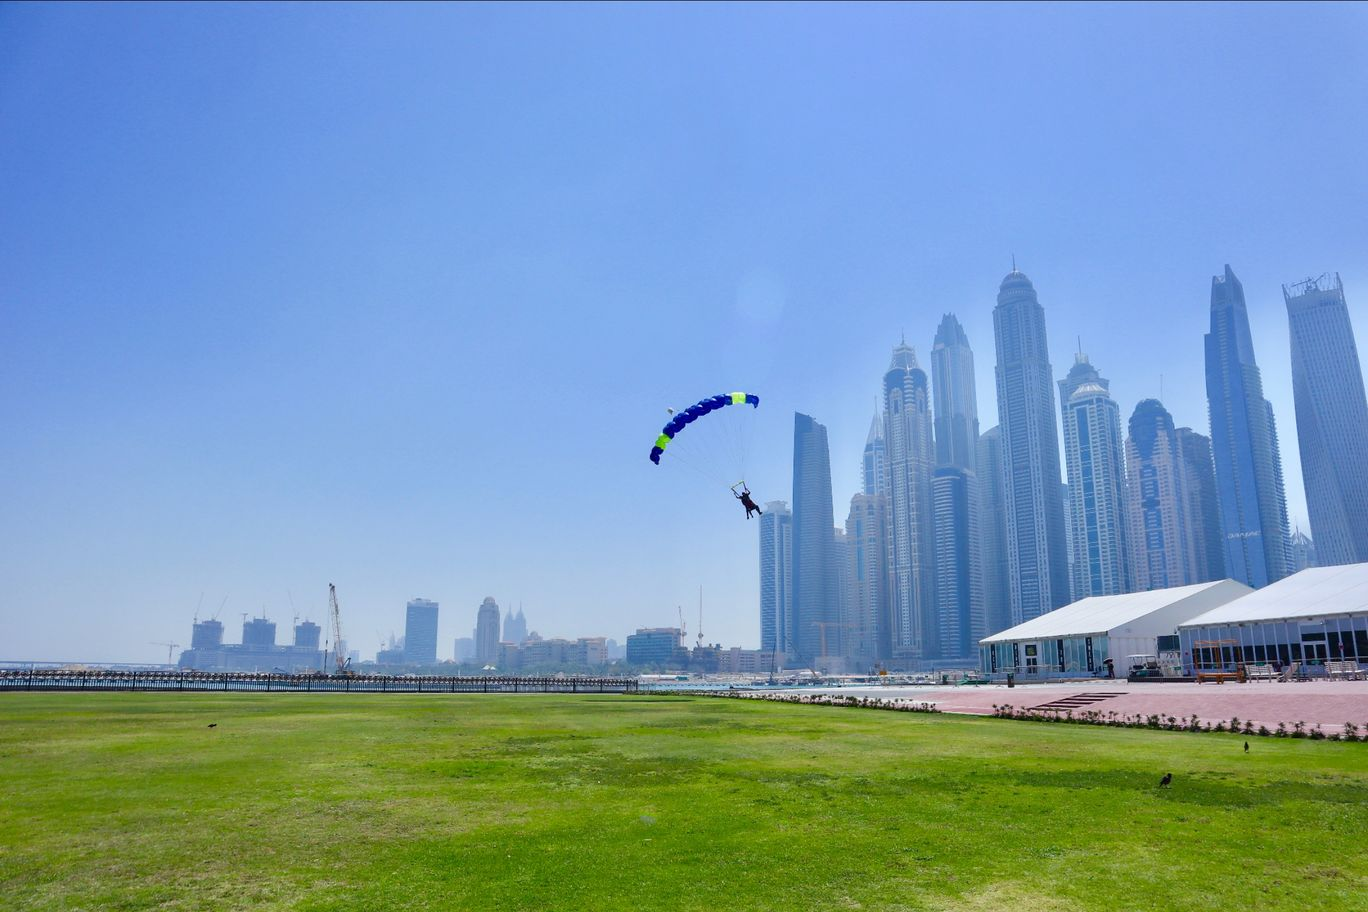 Photo of Skydive Dubai - Al Seyahi Street - Dubai - United Arab Emirates By Yashwanth Maheshwaram